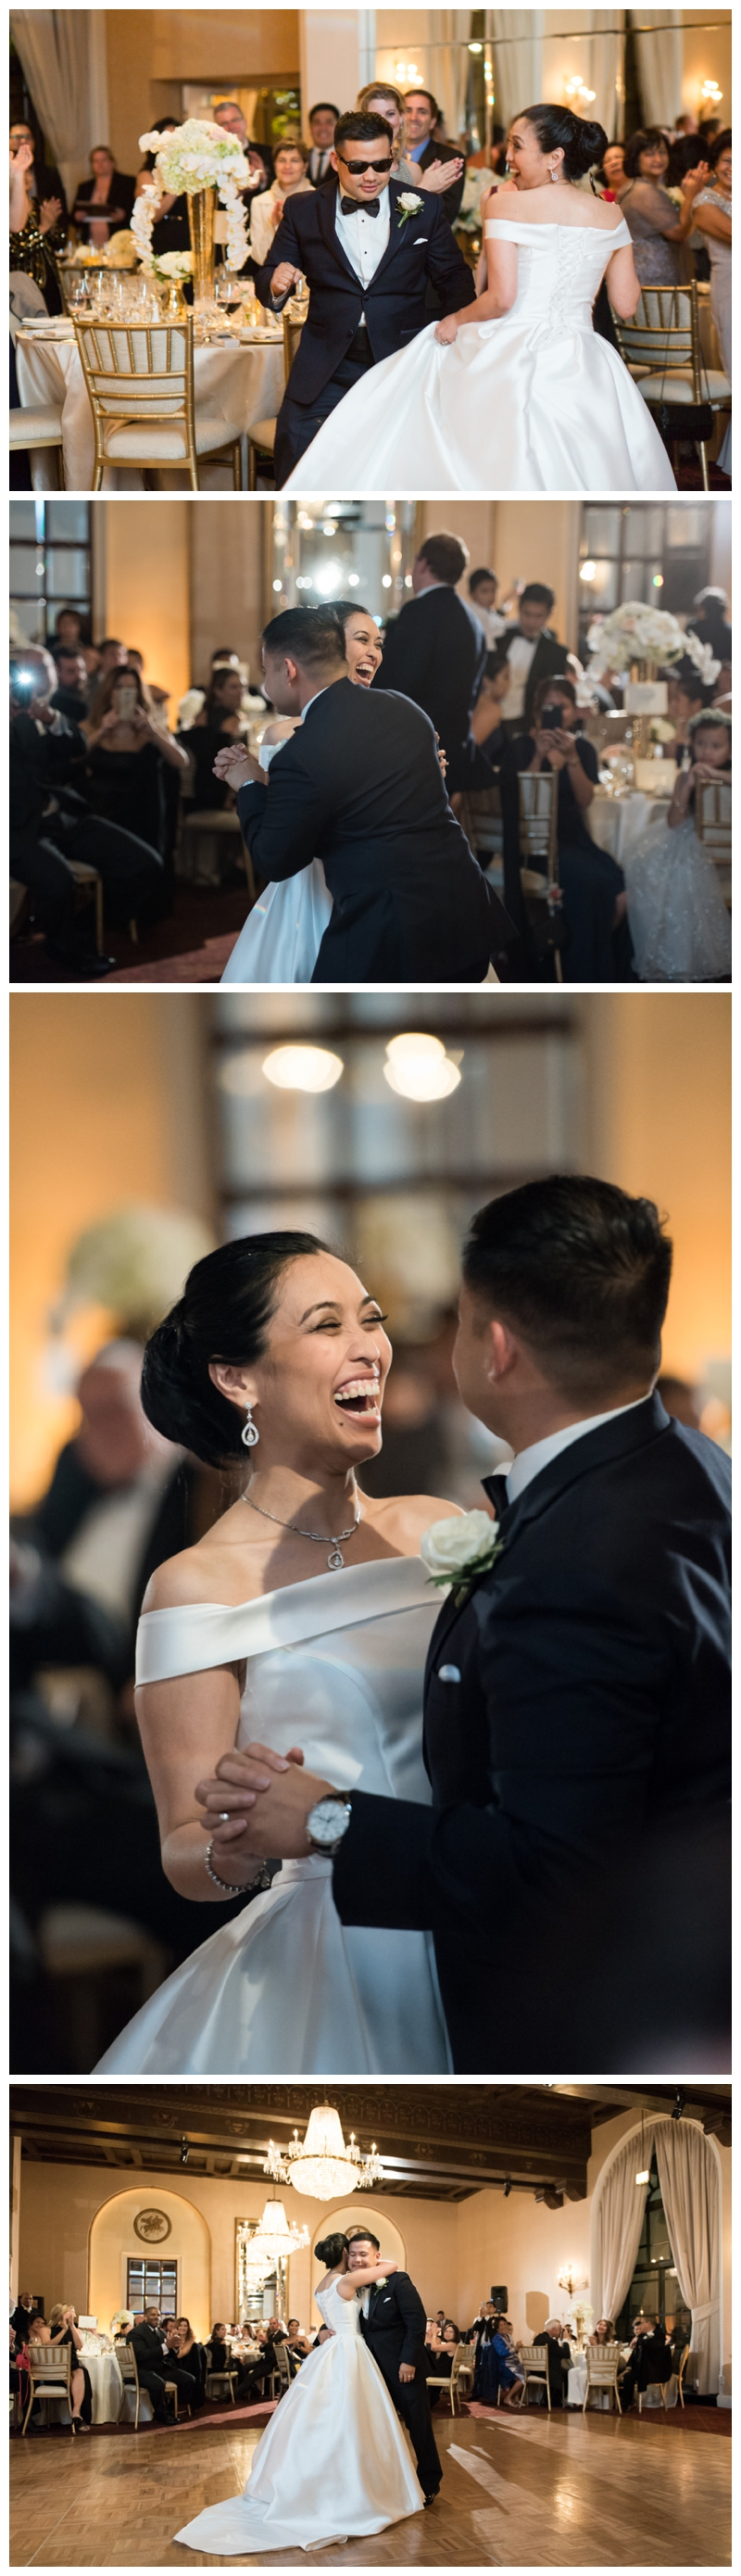 Wedding in Washington DC at the St Regis Hotel by Rachael Foster Photography_0074.jpg